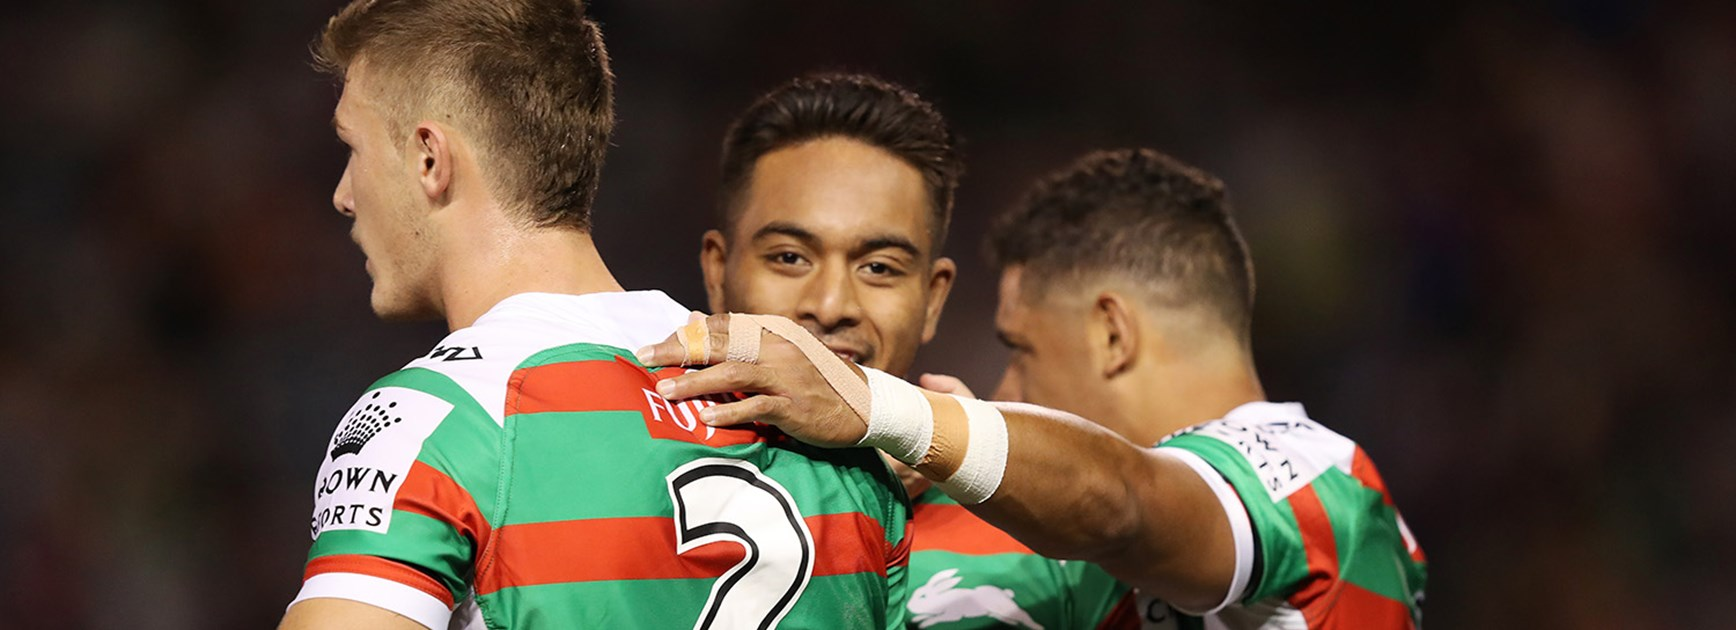 Furner heaps praise on Rabbitohs' unity